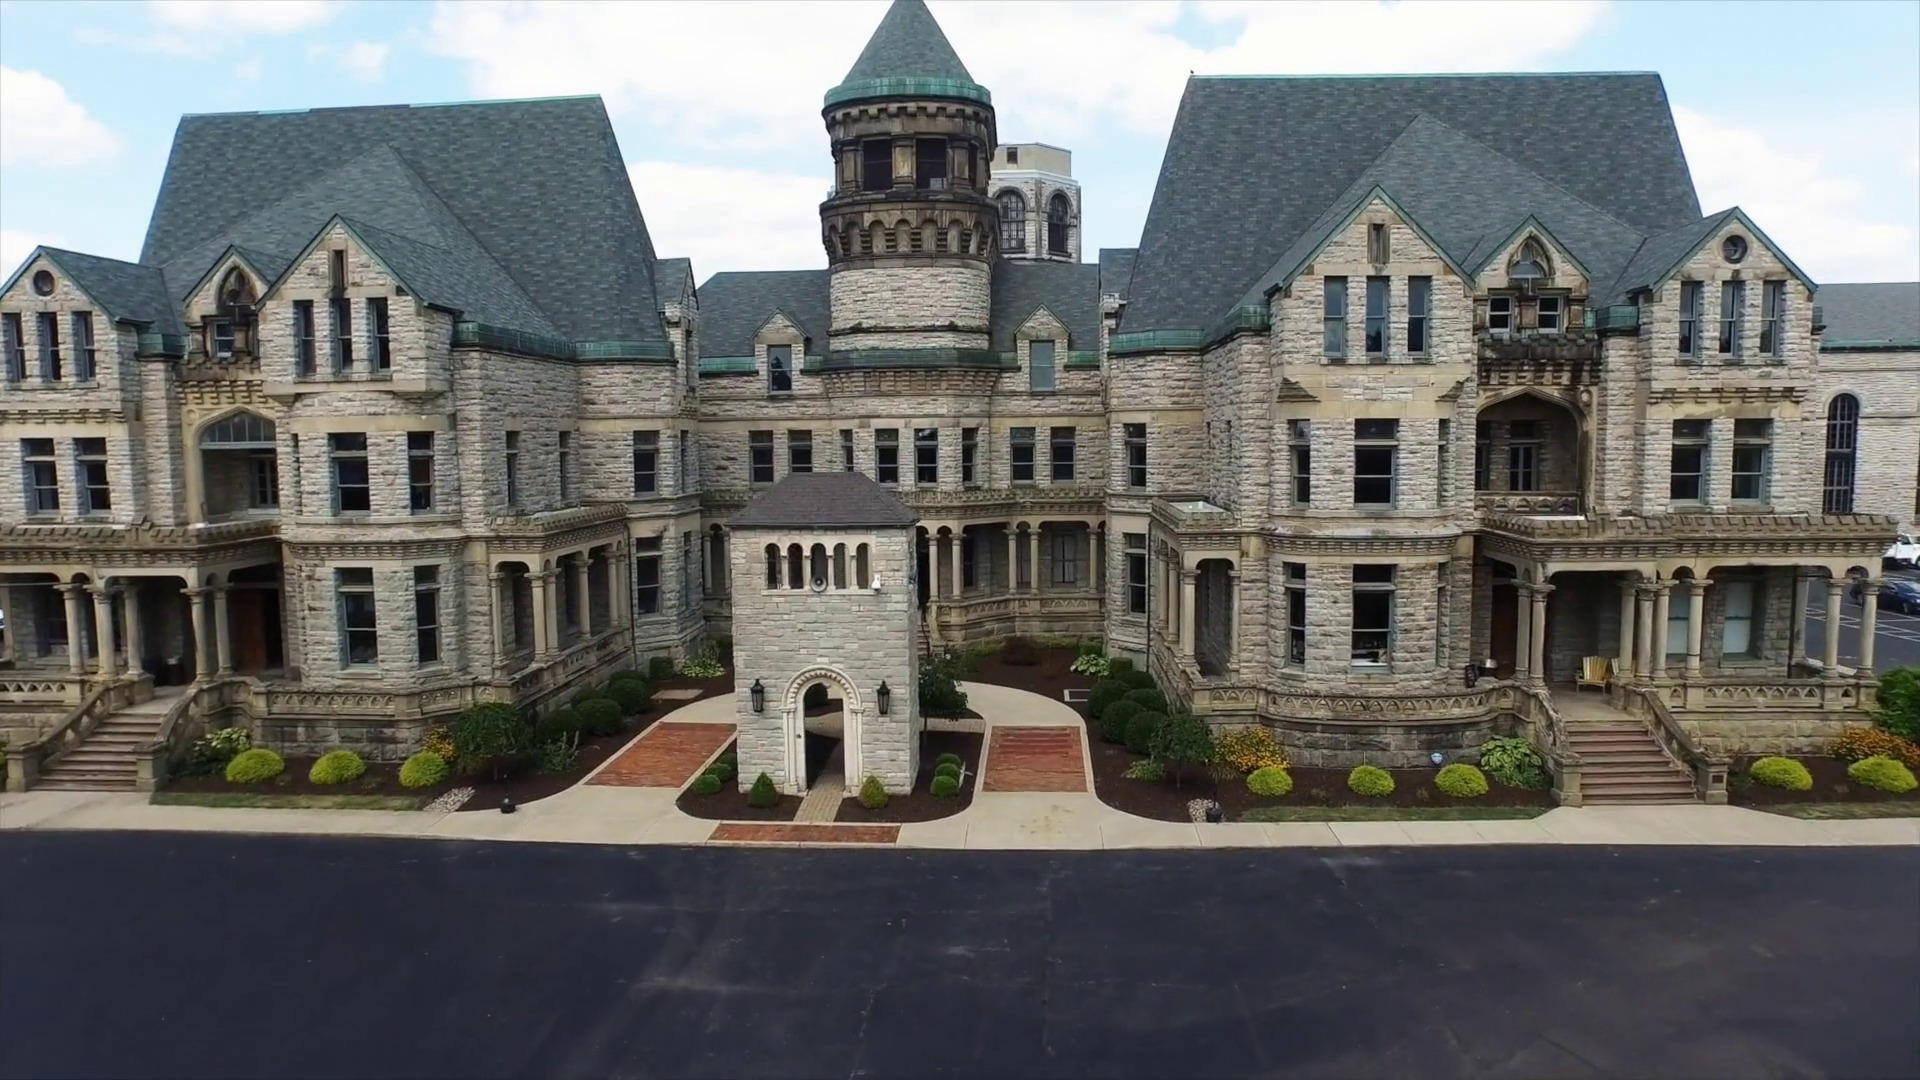 Ohio State Reformatory The ghosts of these violent and maltreated men are not easily silenced. Visitors and tour guides have been pushed and punched by unseen forces. As with other haunted locations, many claim to feel an inexplicable chill while on prison grounds. Additionally, witnesses have heard cell doors slam and seen dark apparitions. Even the road leading to the Ohio State Reformatory seems haunted. Local legend suggests it is the ghost of Phoebe Wise, a notorious Mansfield hermit and eccentric.